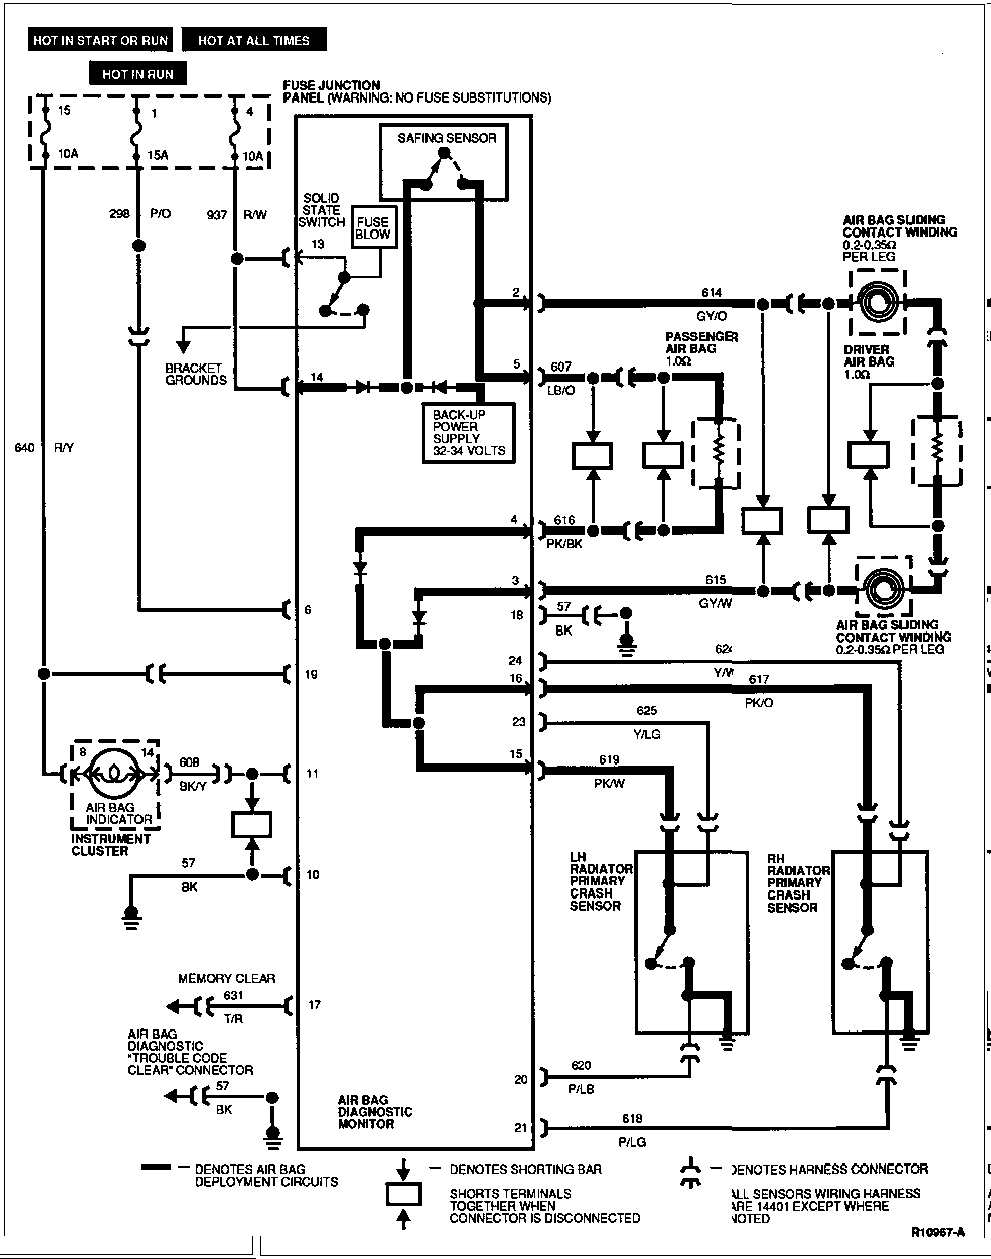 medium resolution of 94 aerostar fuse diagram 94 free engine image for user 1992 aerostar van 94 aerostar two